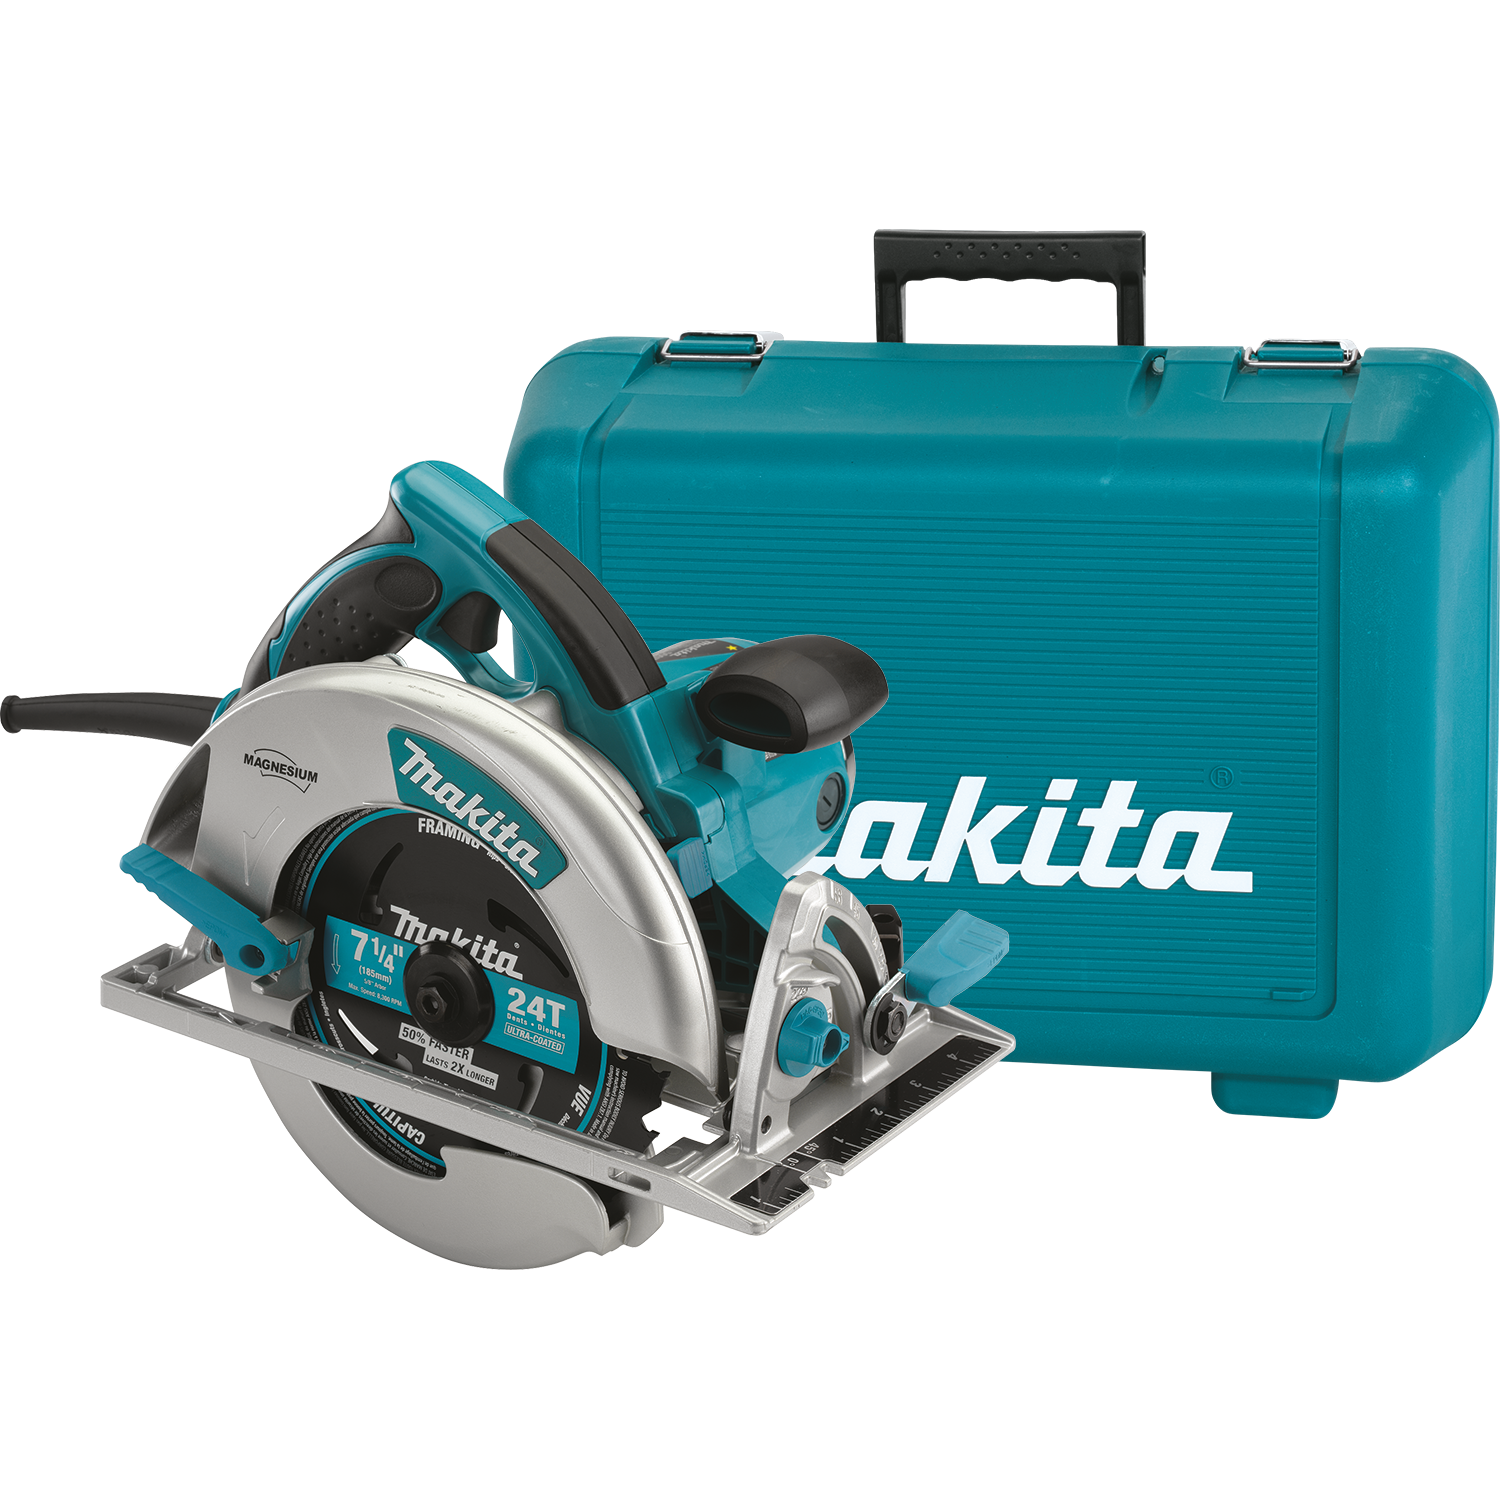 Makita usa product details 5007mg 5007mg greentooth Image collections